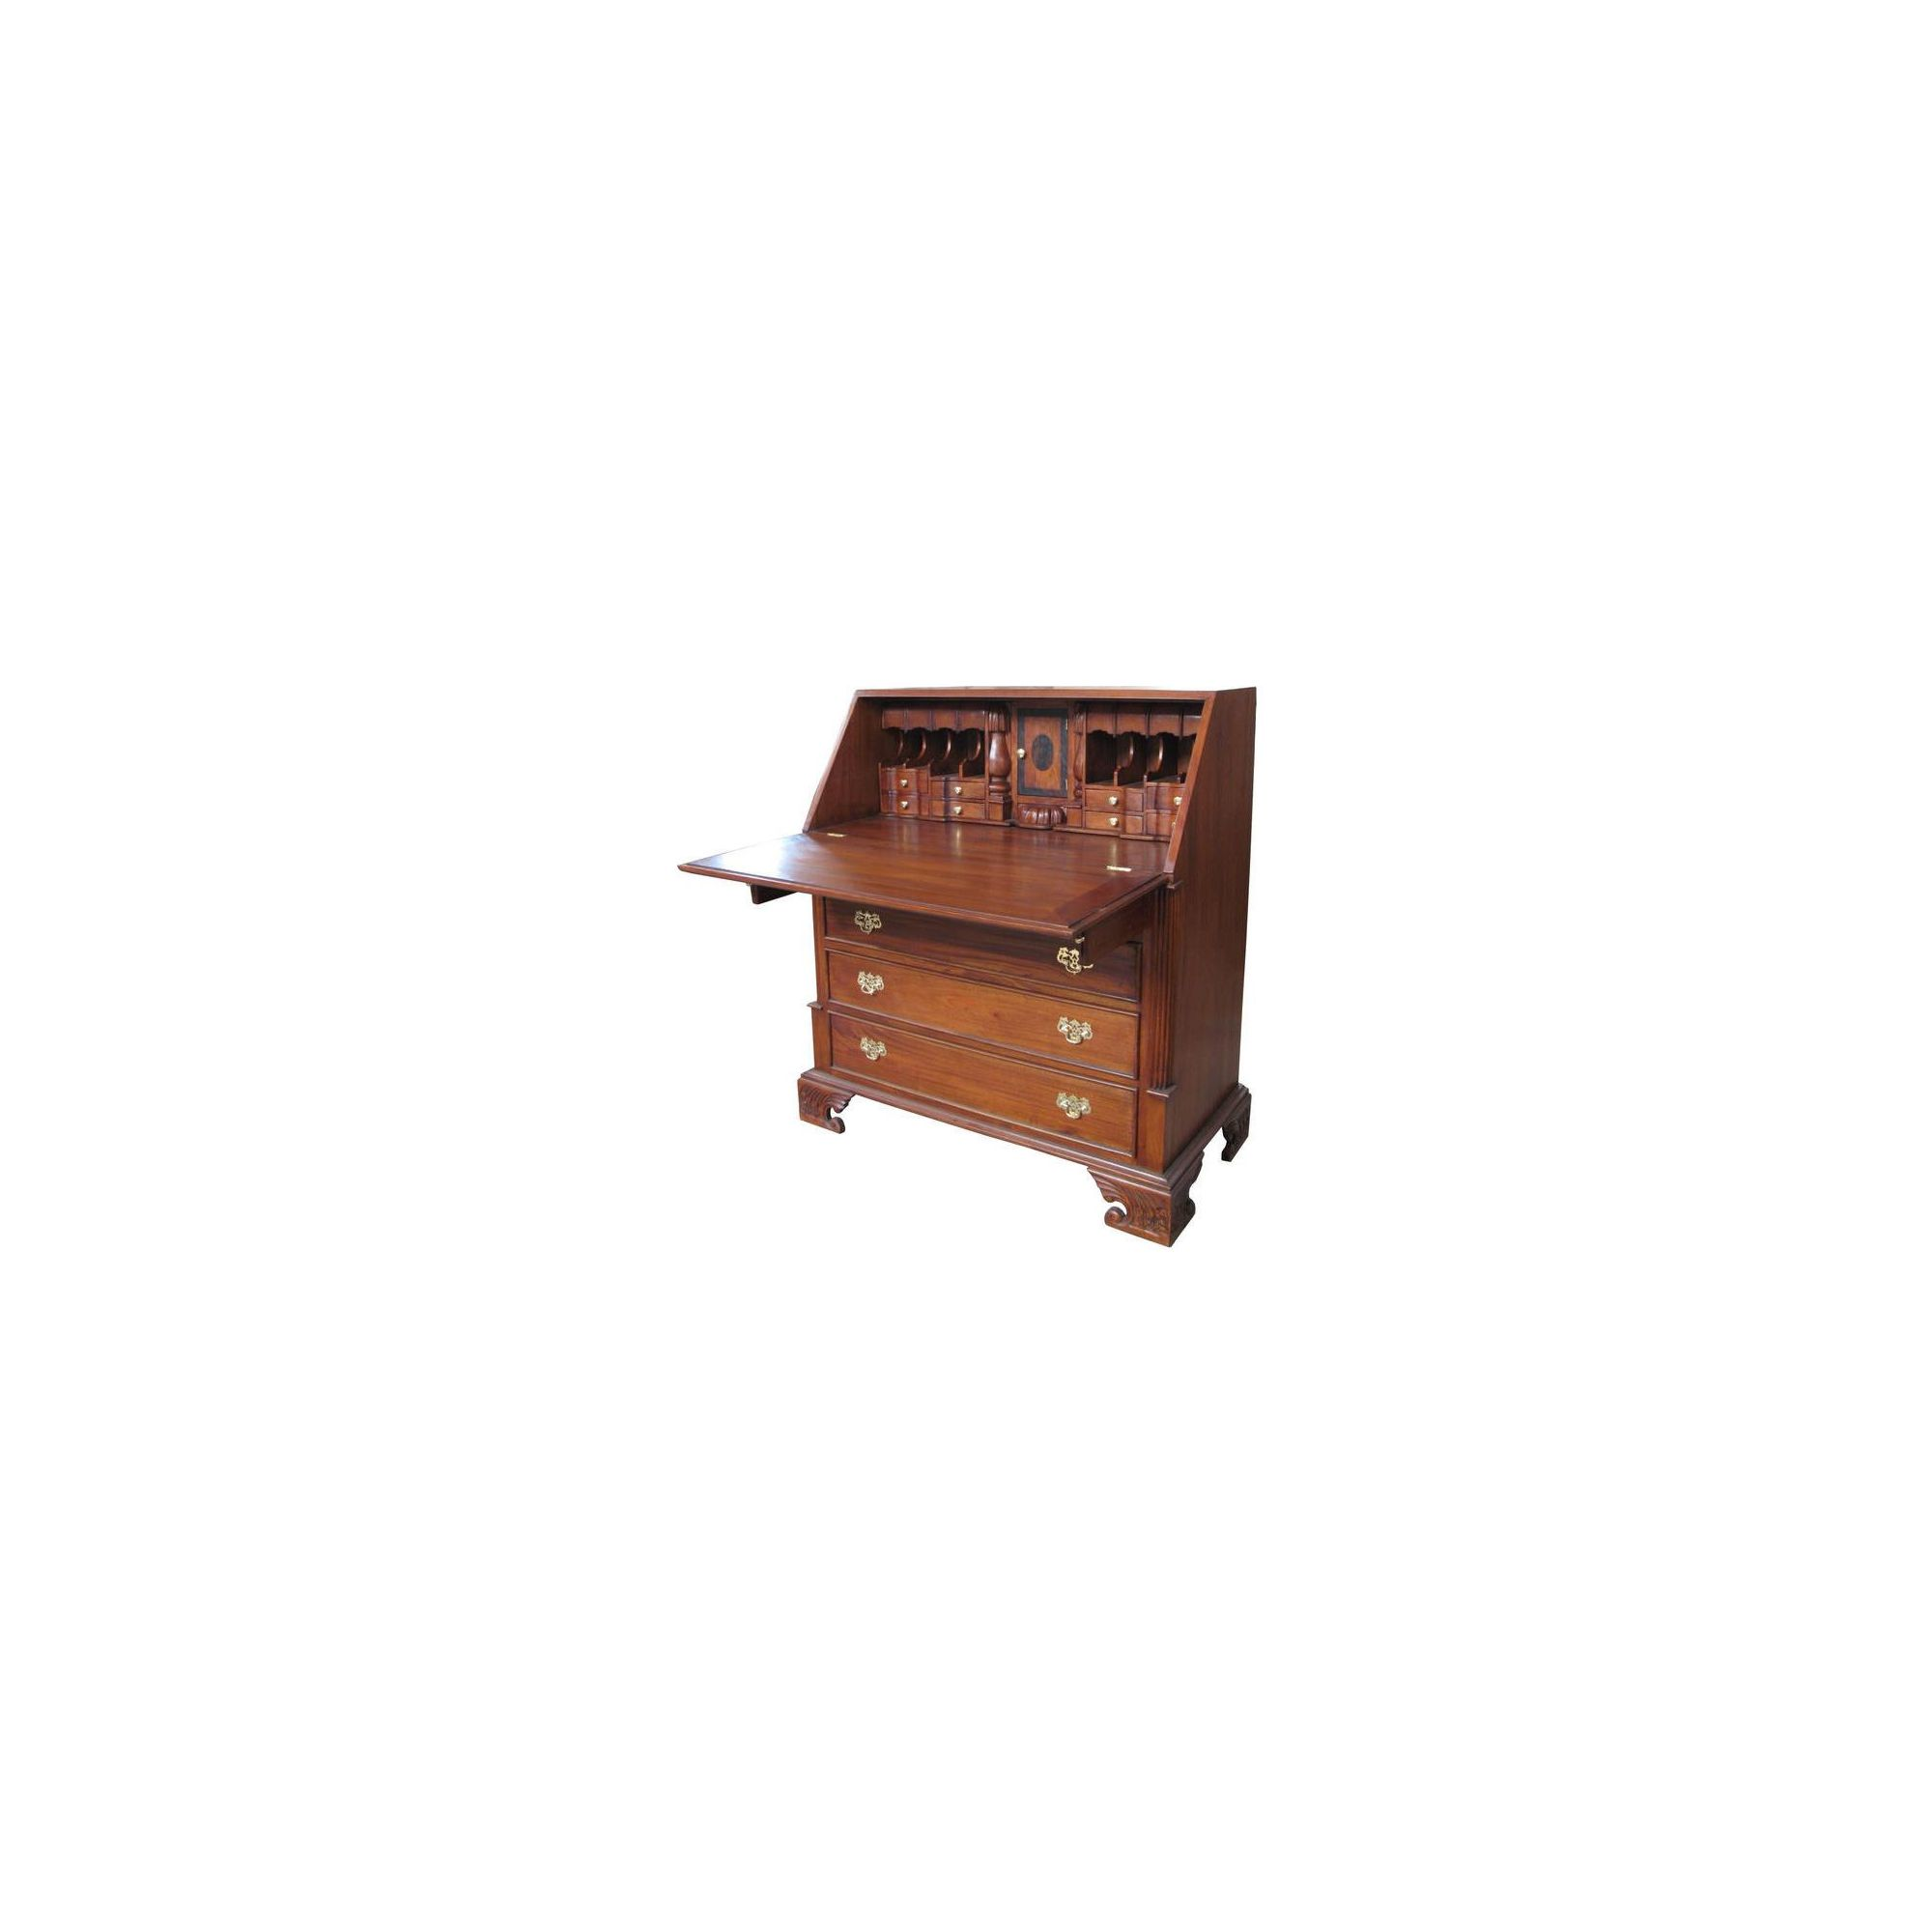 Lock stock and barrel Mahogany Small Bureau Desk in Mahogany at Tesco Direct